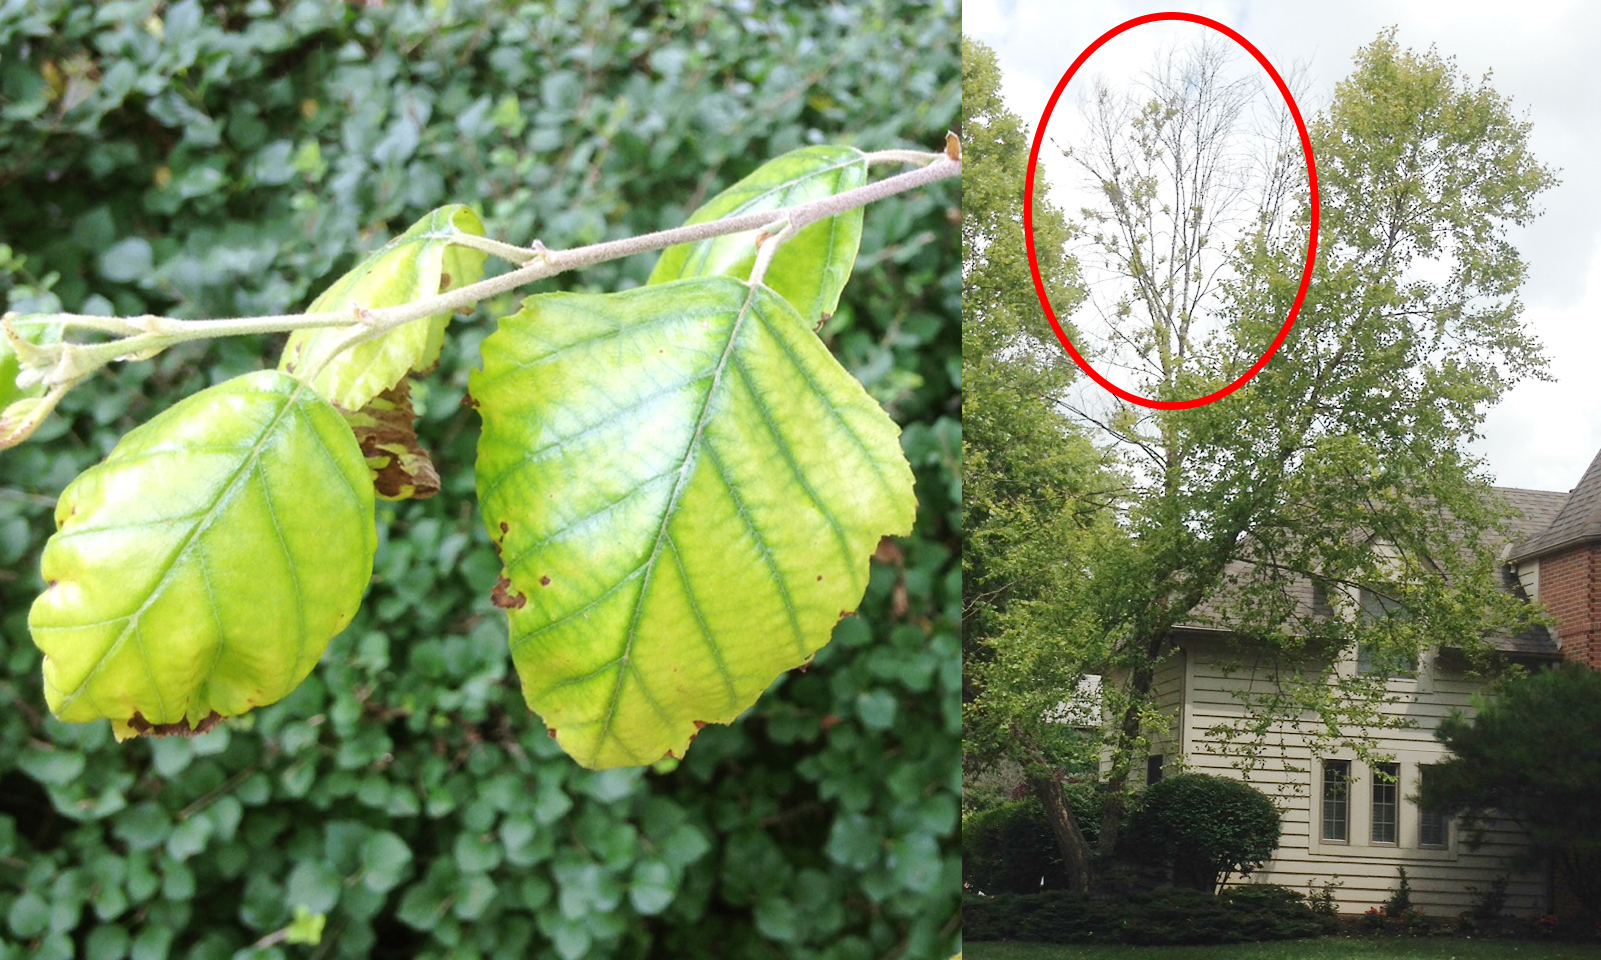 Chlorosis in a River Birch causing a die-back in the canopy